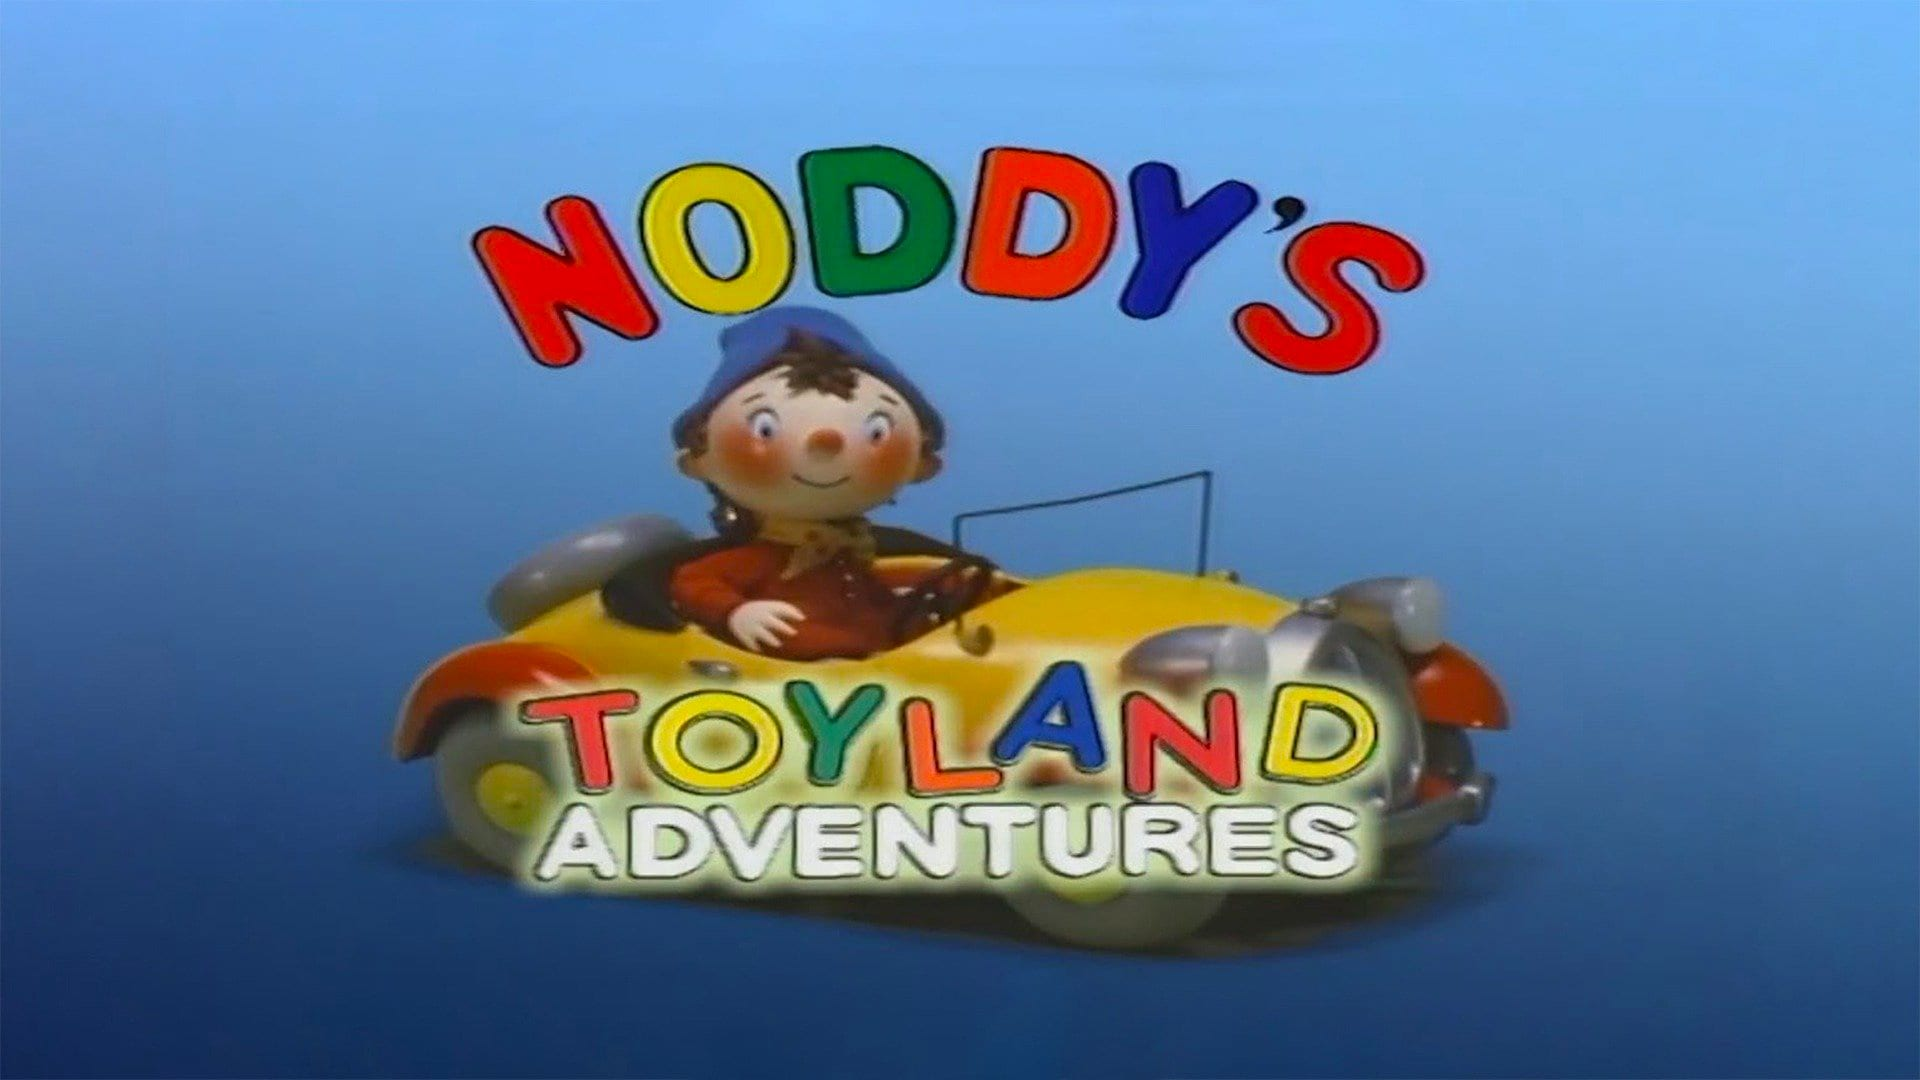 Noddy to the Rescue